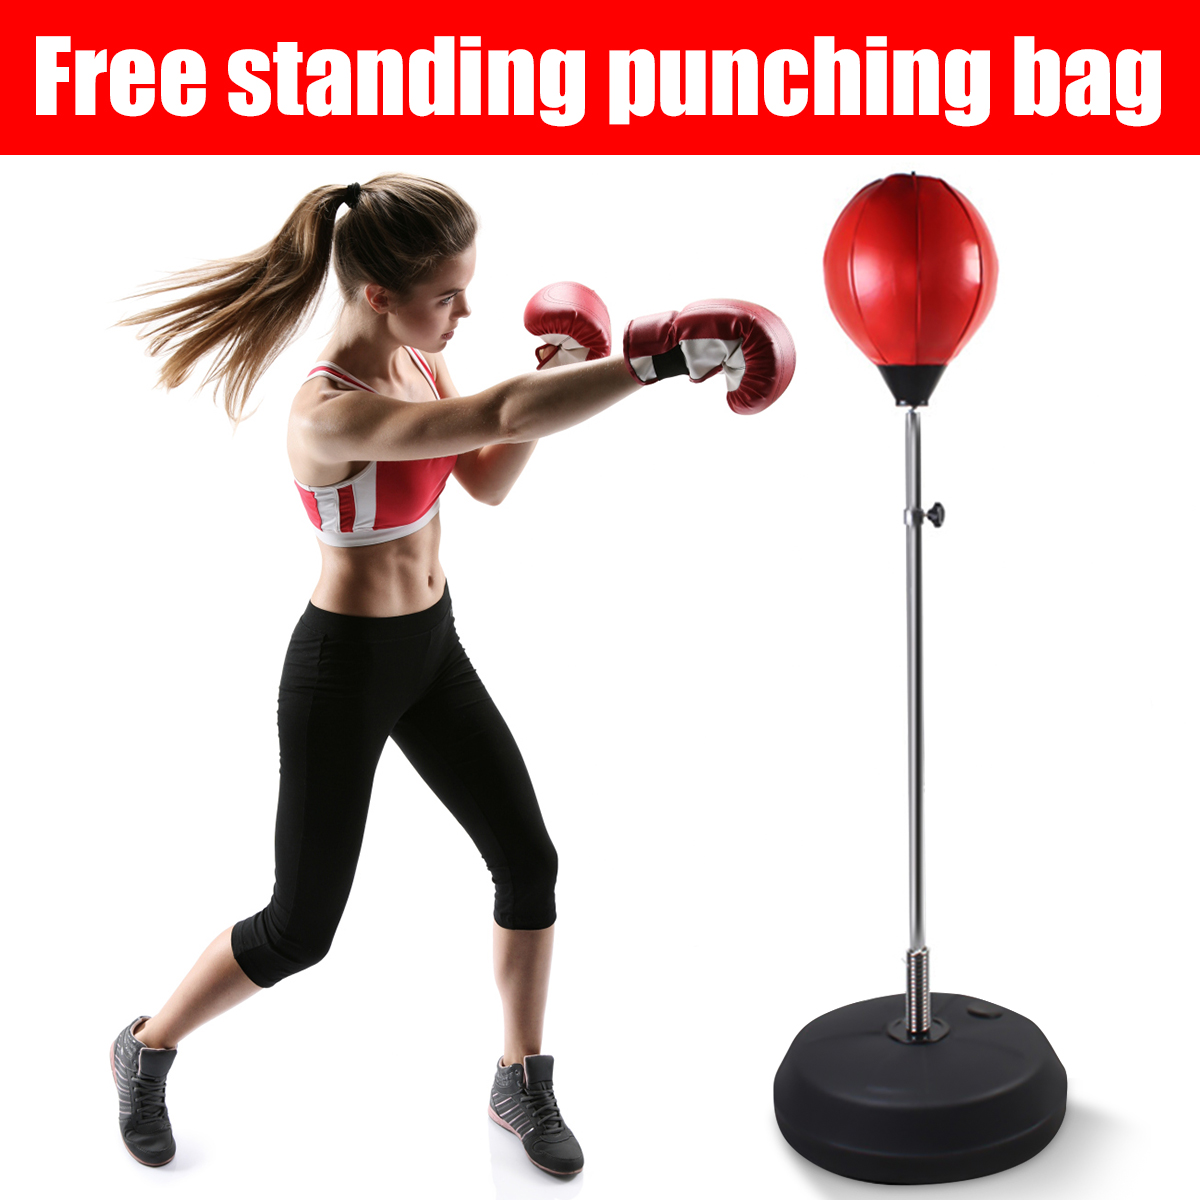 Adjustable Free Standing Punching Speedball Fitness Boxing